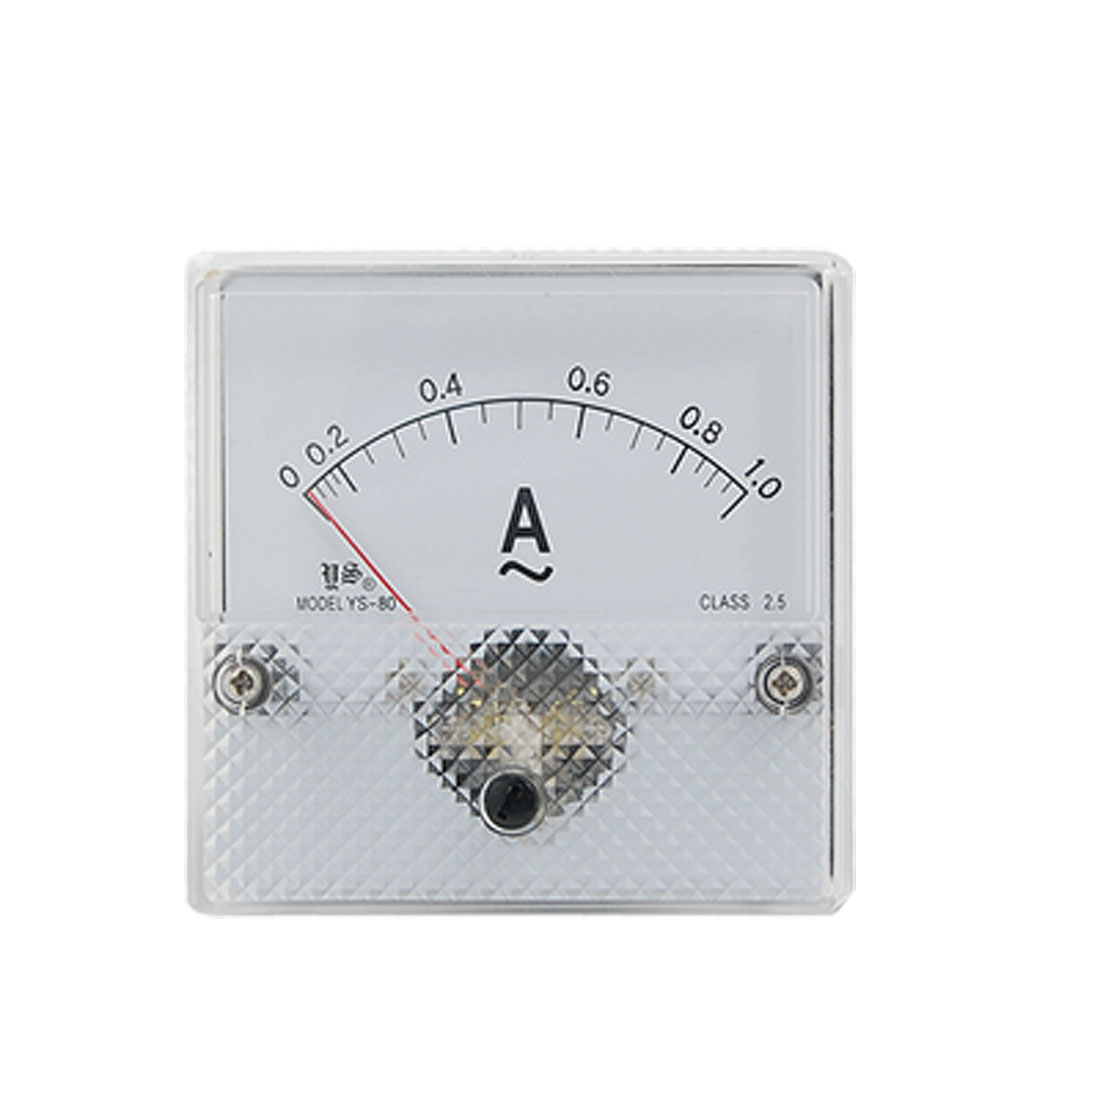 AC 0-1A Current Range Analog Panel Meter Ammeter YS-80